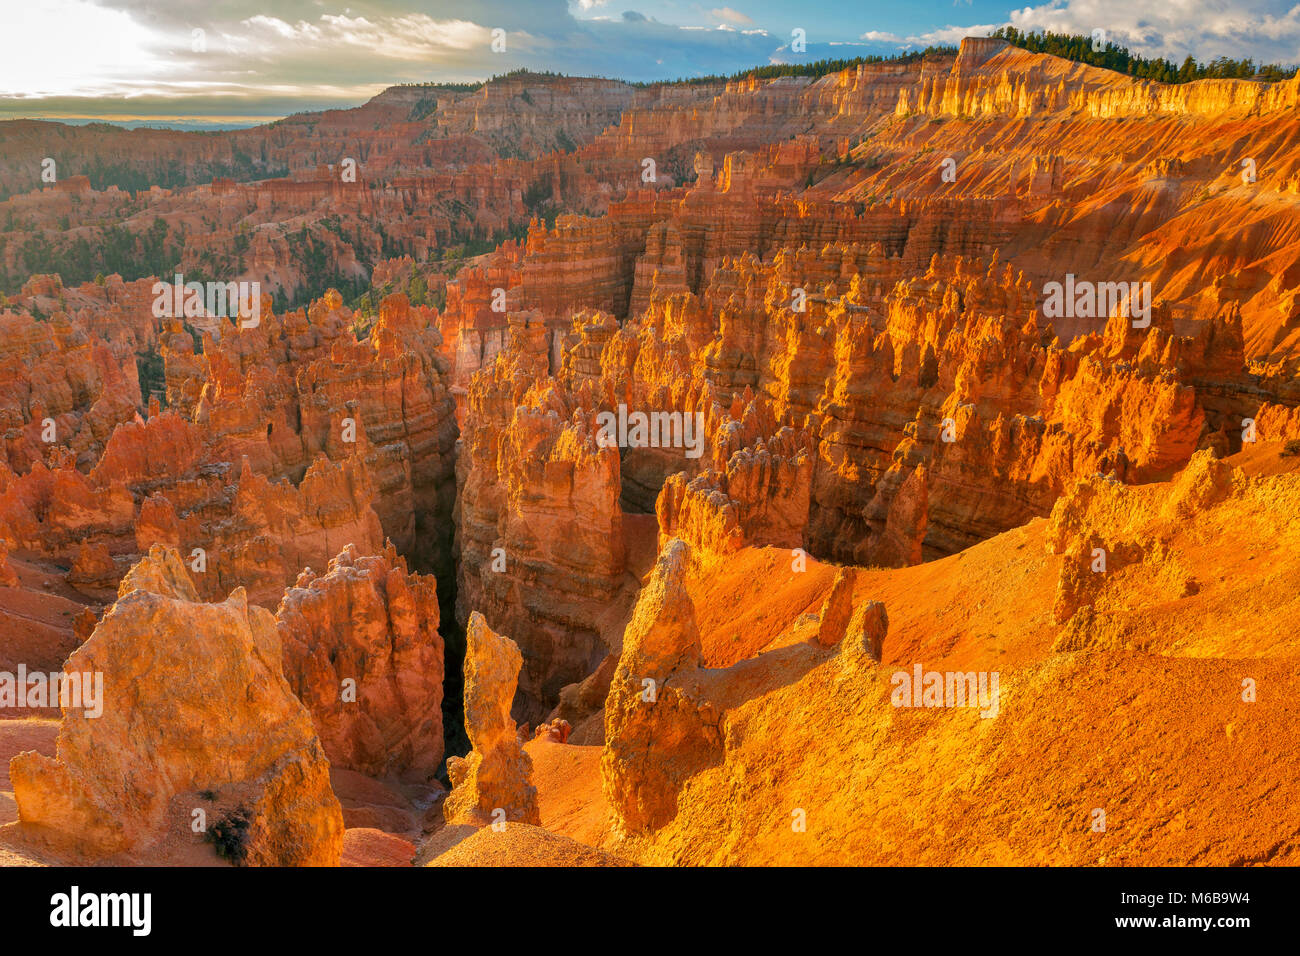 Sunrise, Hoodoos, Wall Street, Bryce Canyon National Park, Utah Imagen De Stock